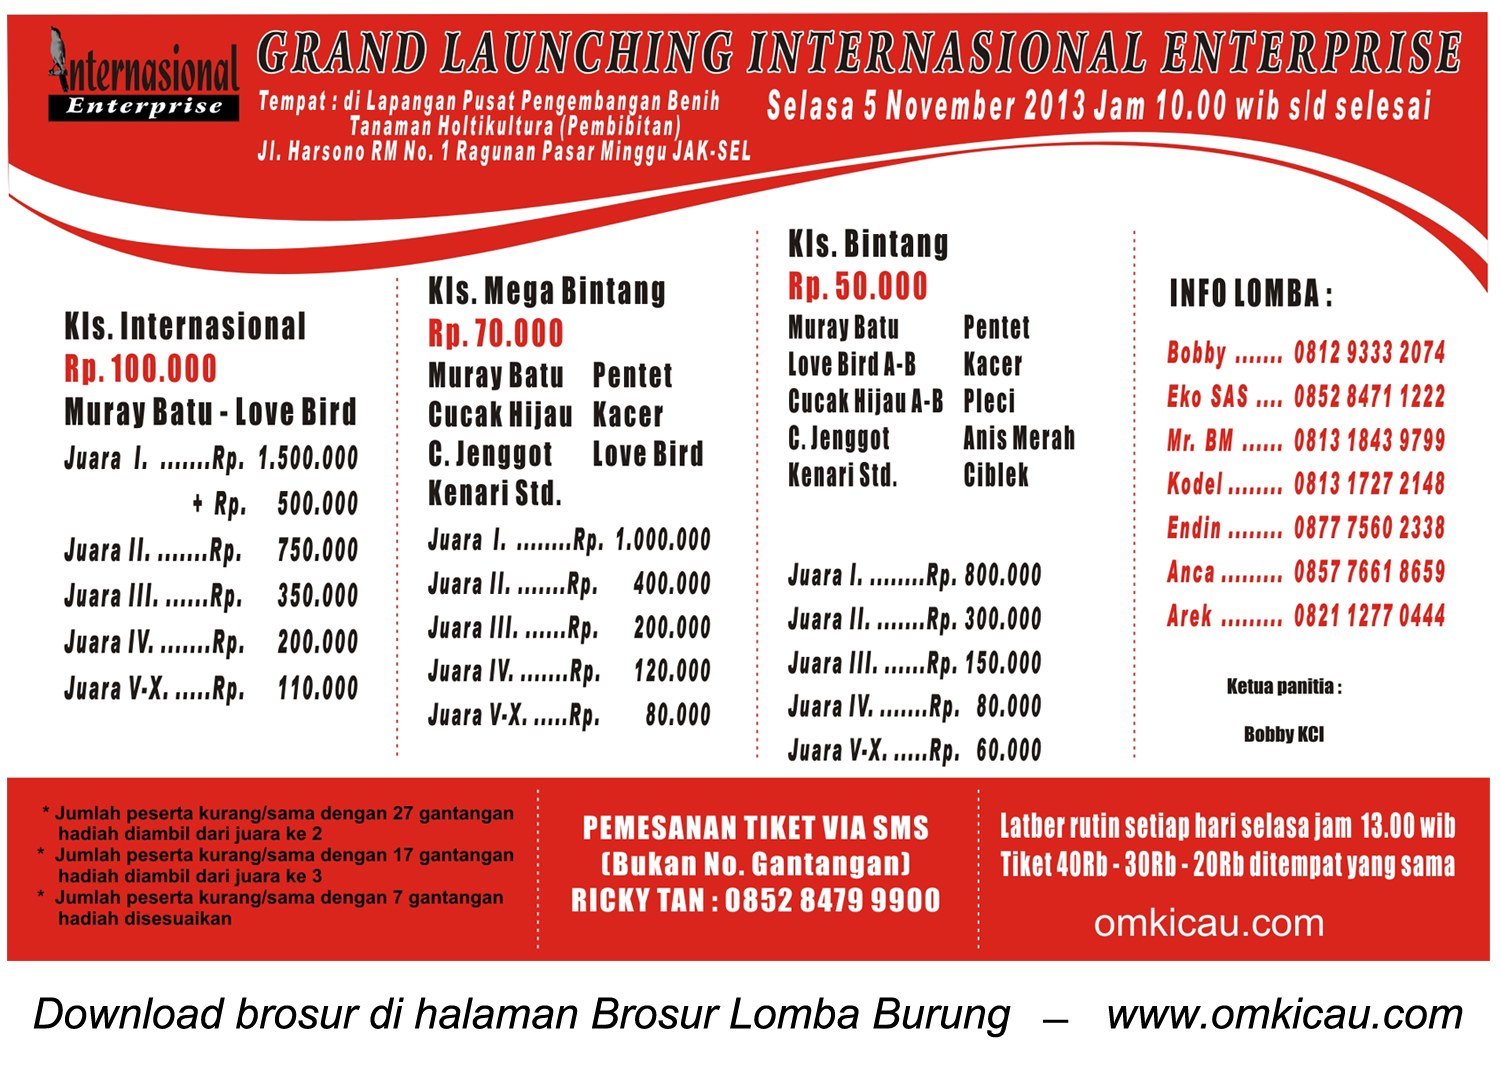 Brosur Lomba Burung Grand Launching Internasional Enterprise, Jakarta, 5 November 2013